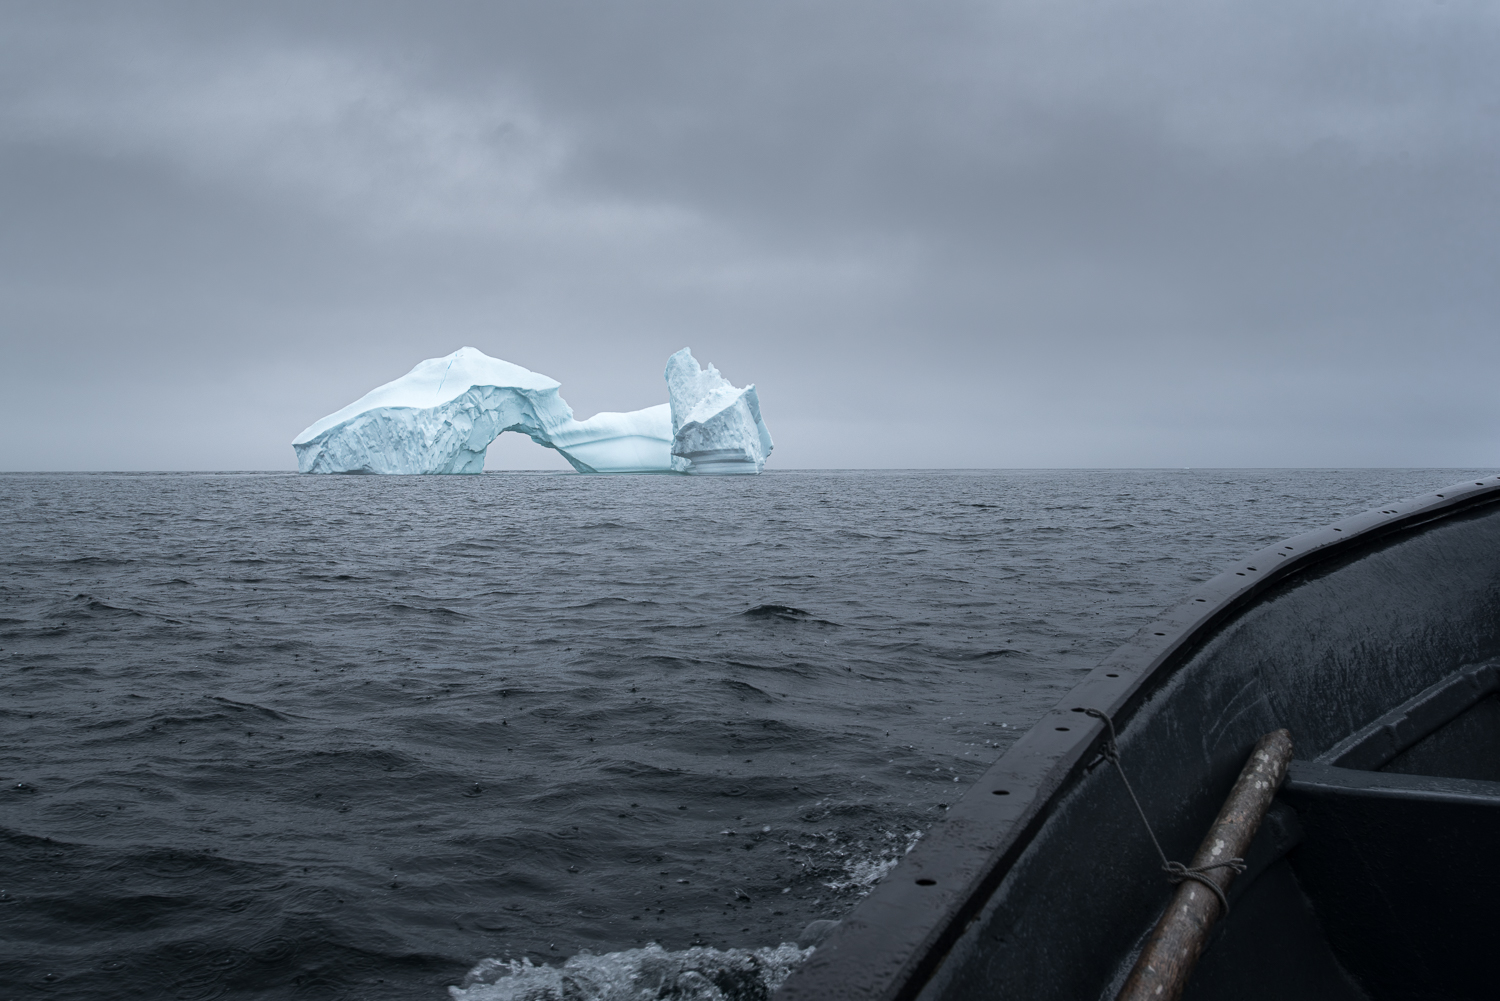 My dream iceberg as seen from Roland's boat.